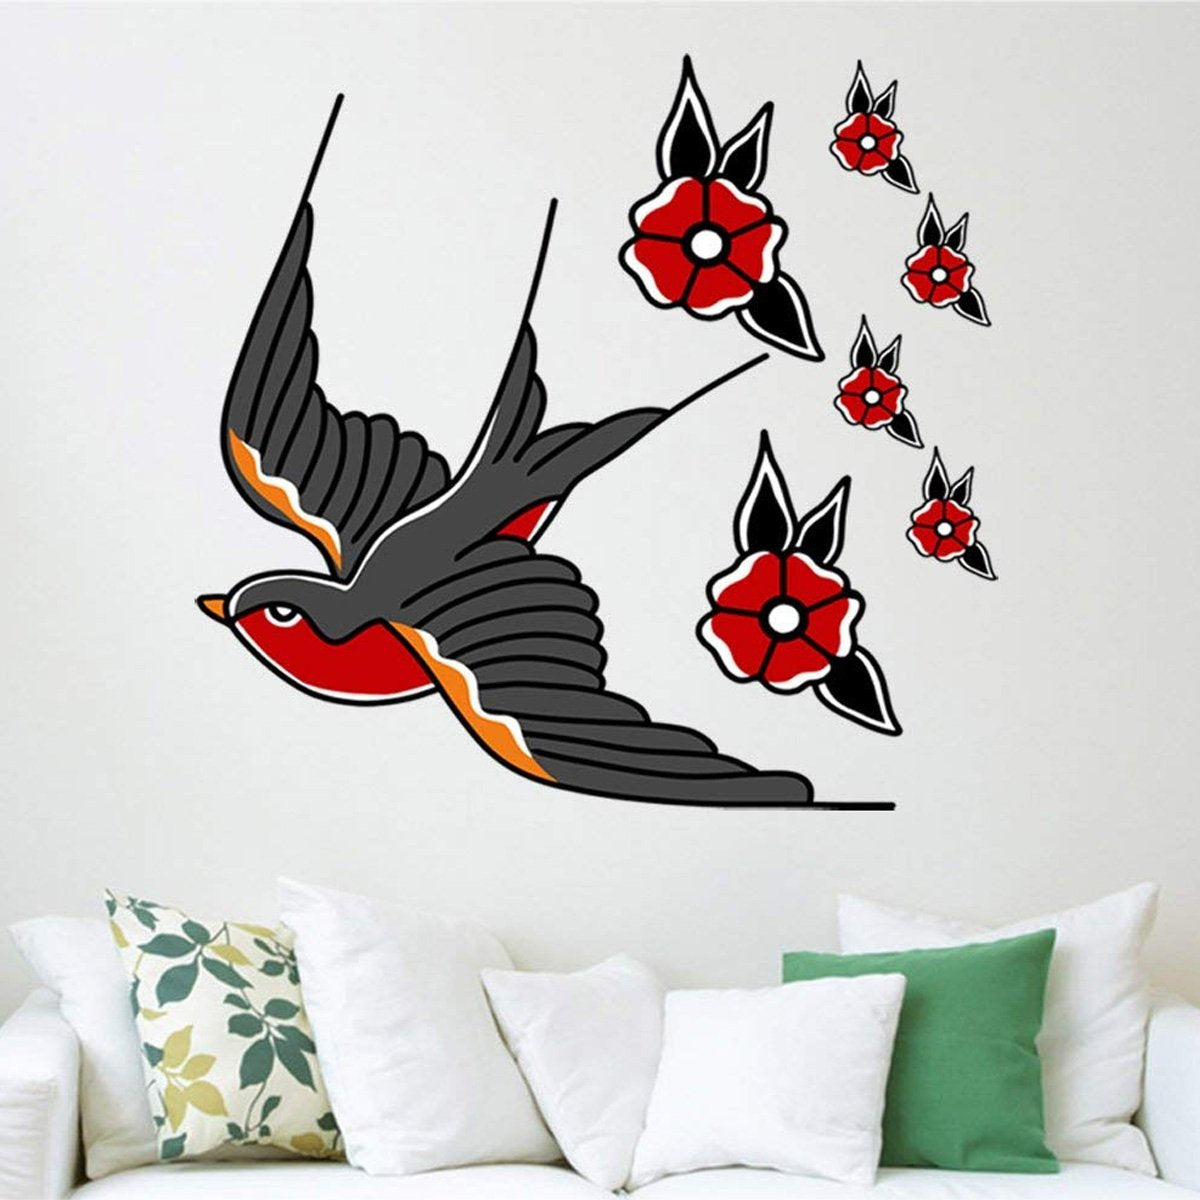 VWAQ Swallow Tattoo Wall Decor Peel and Stick Bird Decals American Traditional Style - AT3 - VWAQ Vinyl Wall Art Quotes and Prints